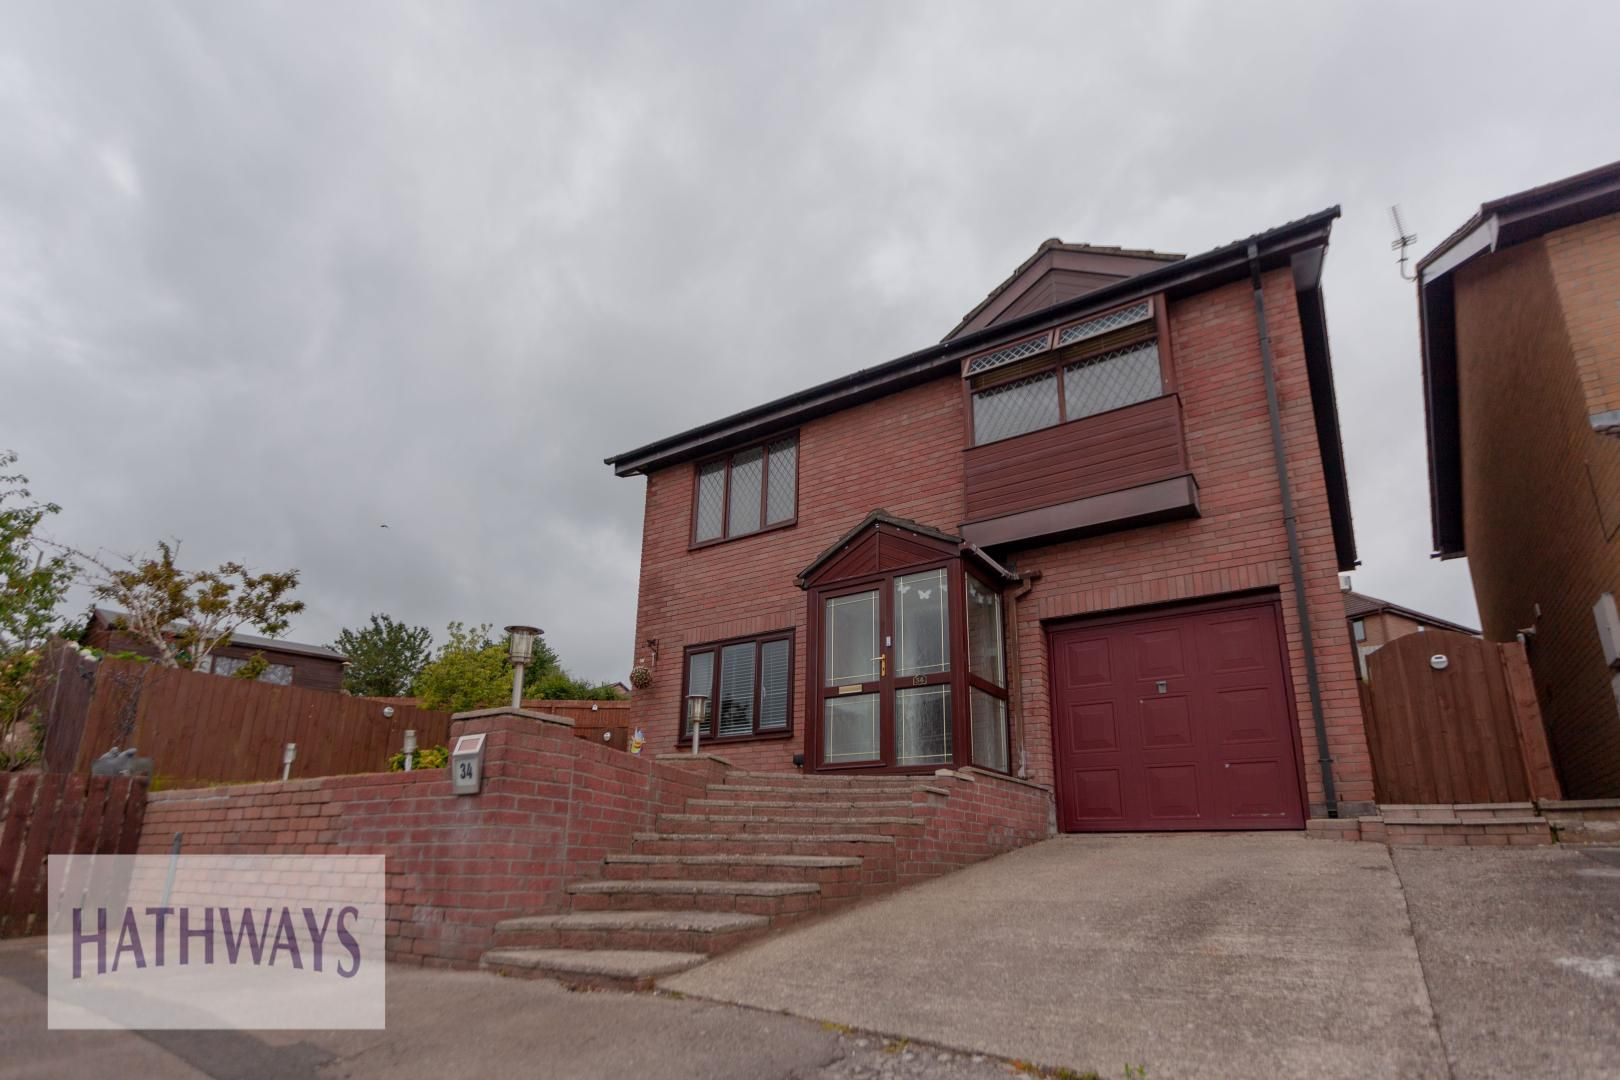 4 bed house for sale in Thistle Court, NP44